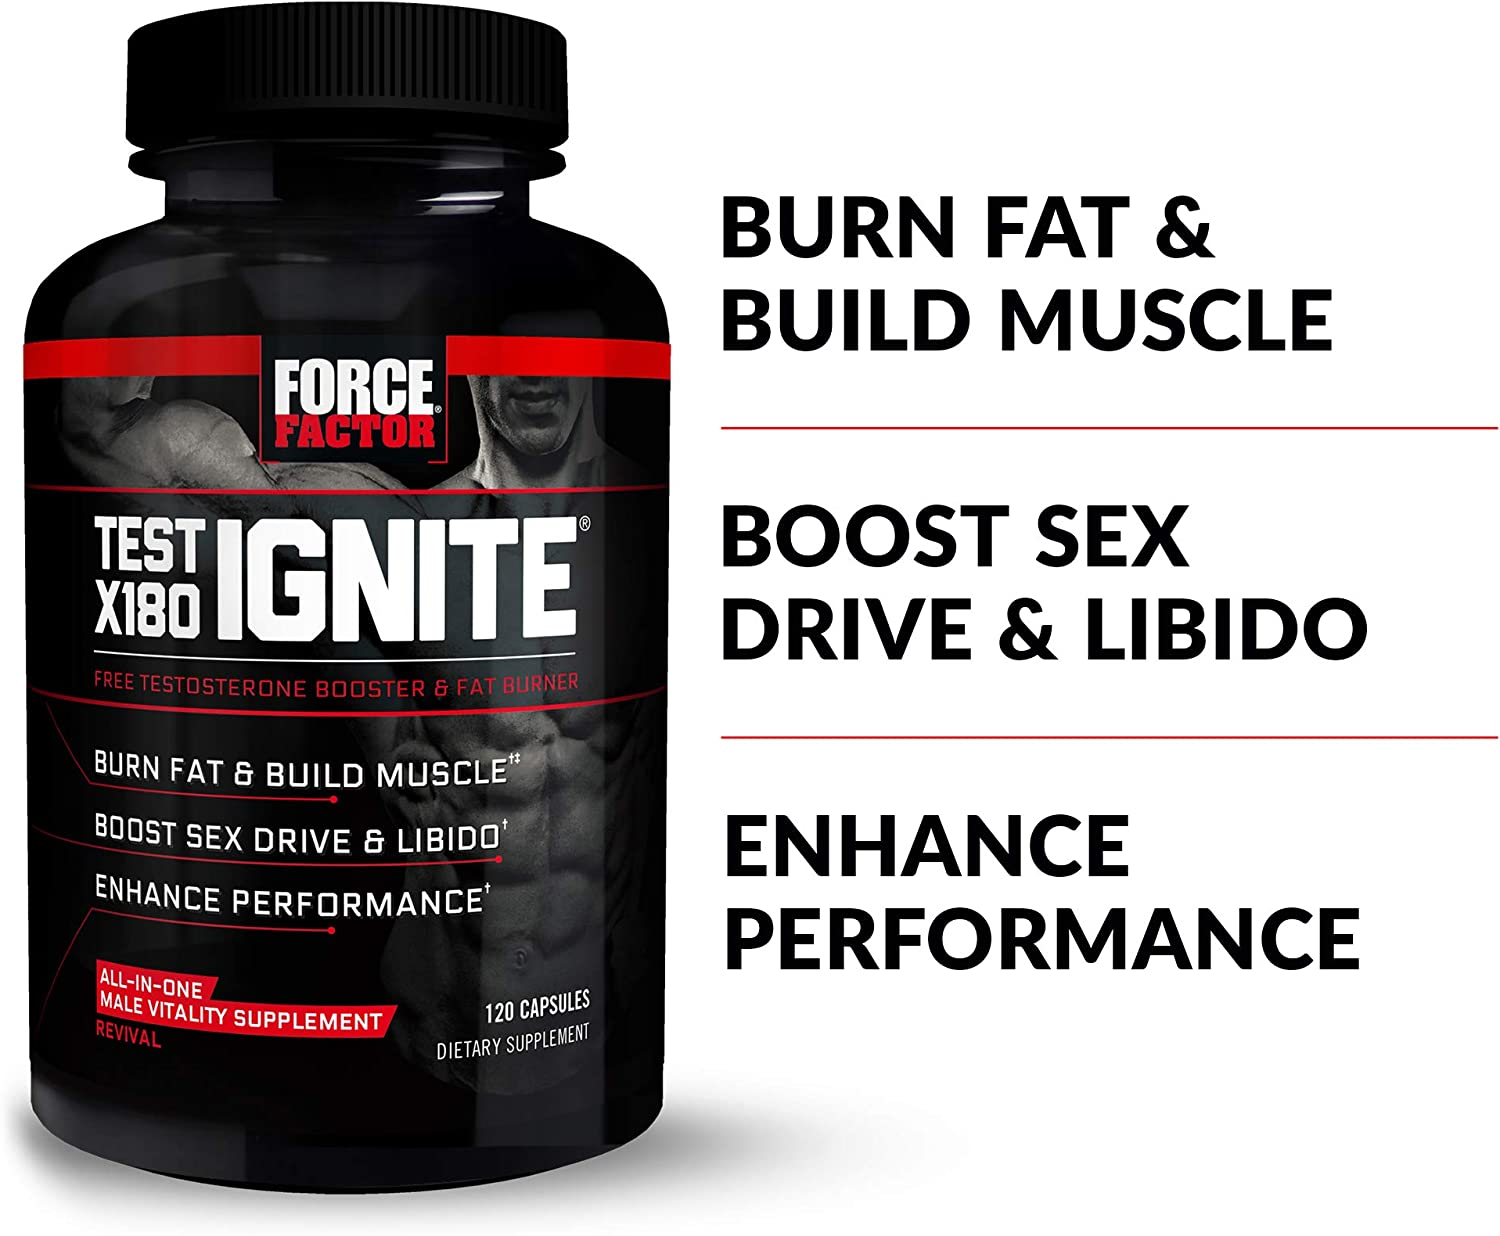 Test X180 Ignite Free Testosterone Booster to Increase Sex Drive & Libido, Burn Fat, Build Lean Muscle, & Improve Performance, Force Factor, 120 Count: Health & Personal Care